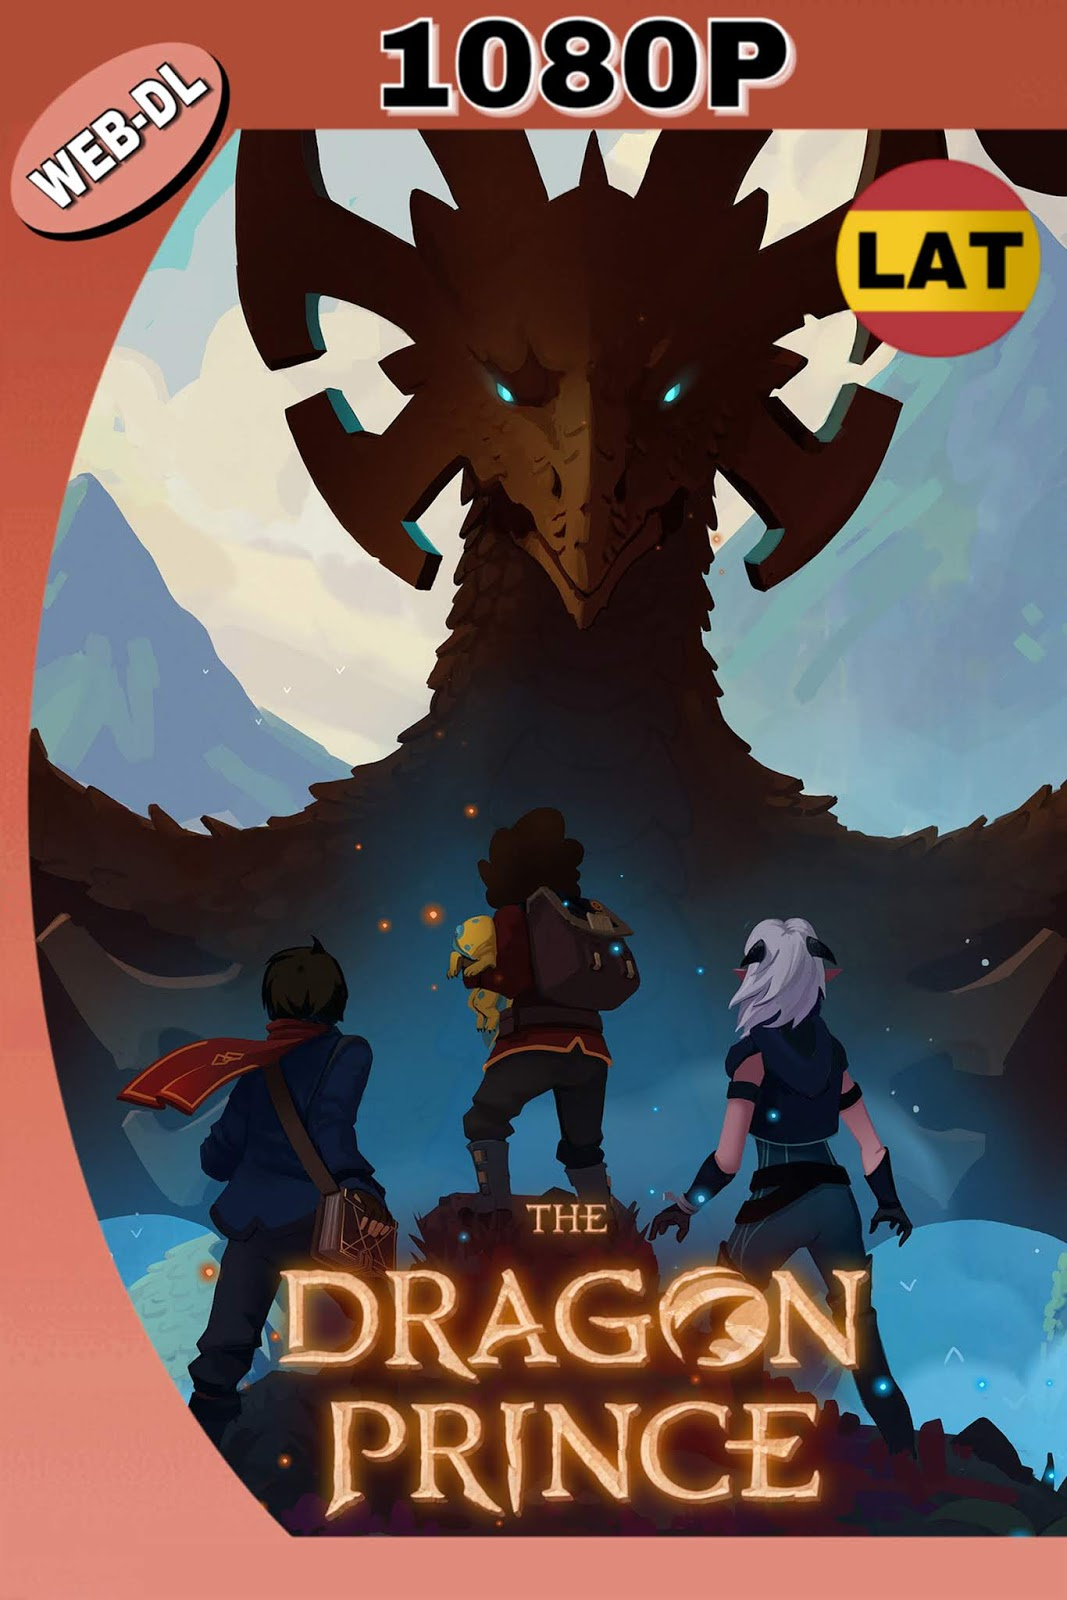 THE DRAGON PRINCE 2018 NF WEBDL 1080 6GB.mkv